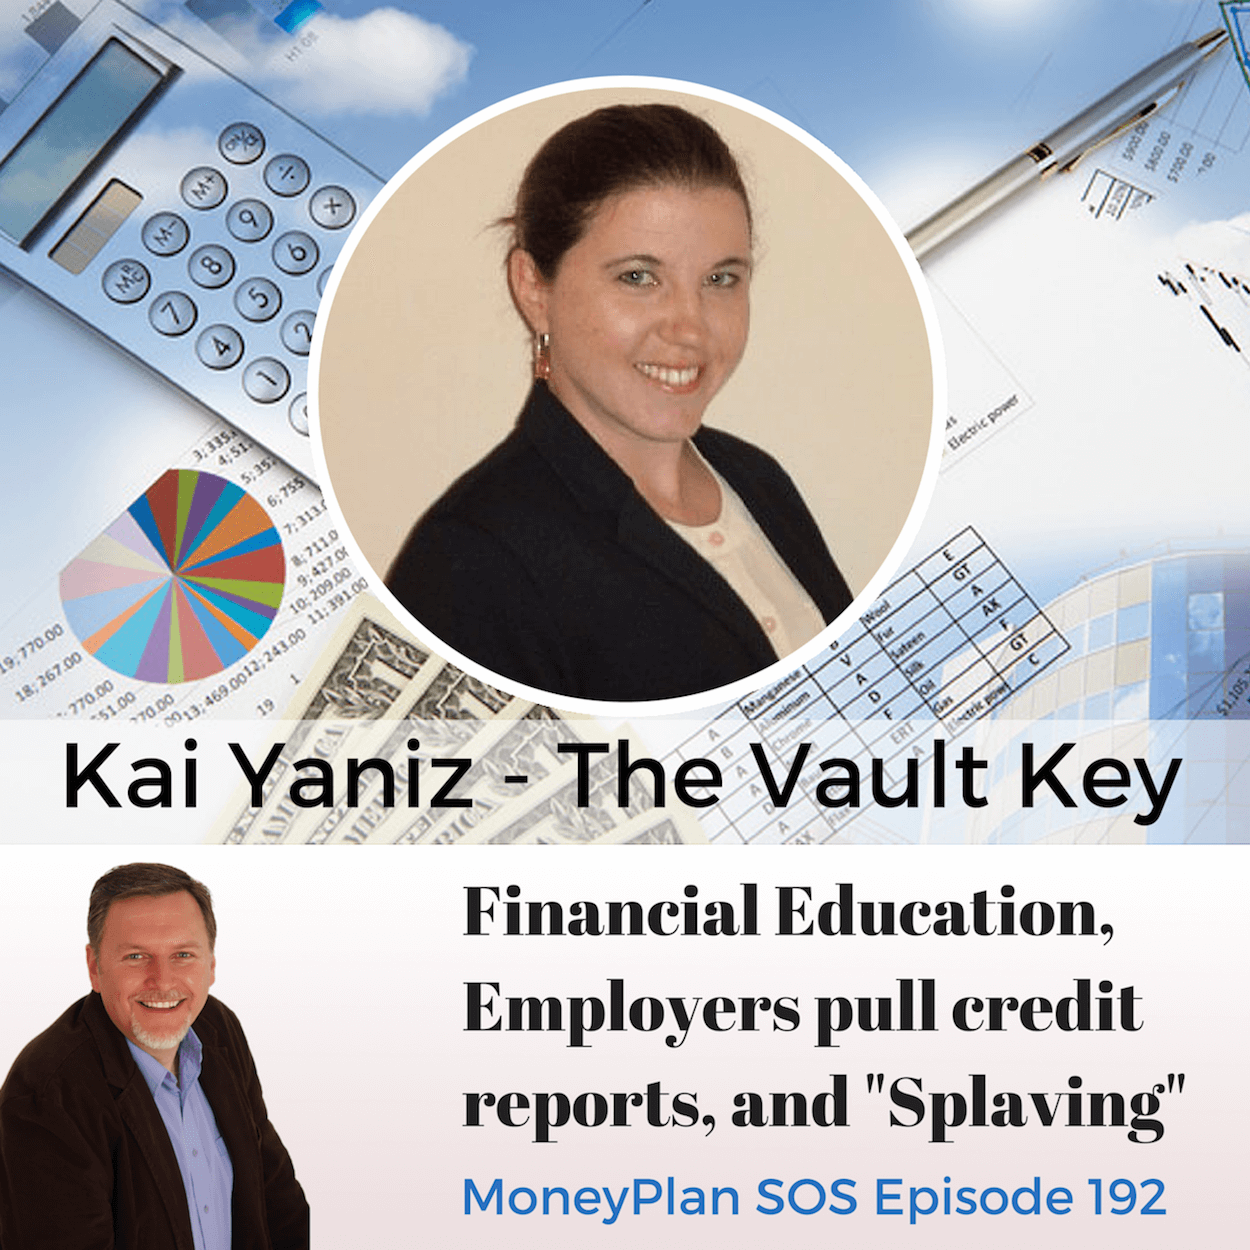 Interview with The Vault Key and I Can't Live Without My Smartphone